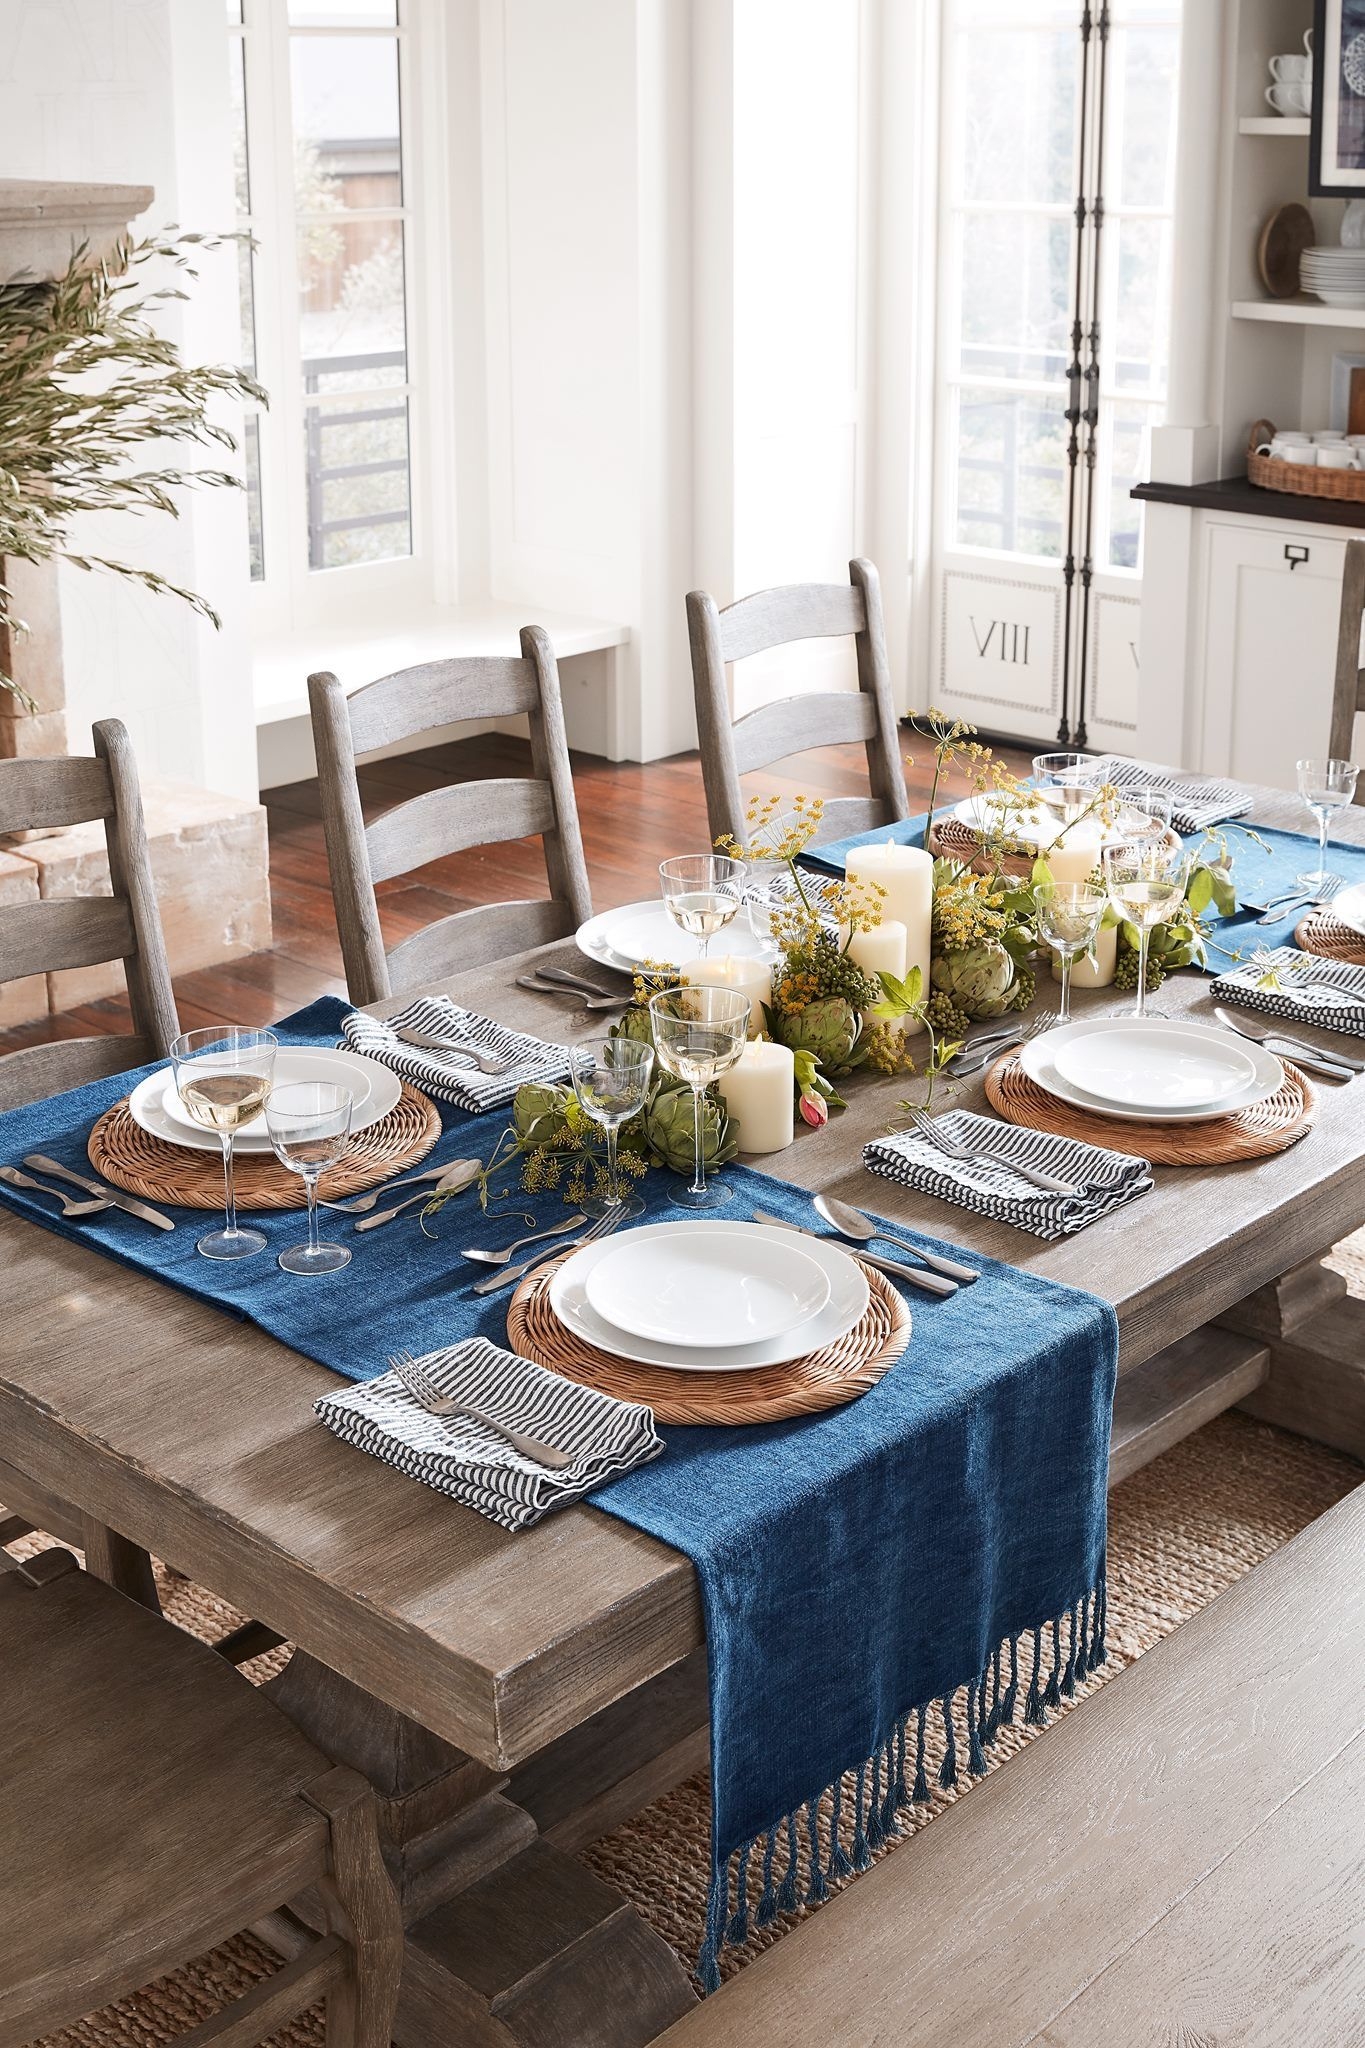 Pin By Lori On The Bluebird Cottage Dining Table Decor Dinning Table Decor Pottery Barn Table